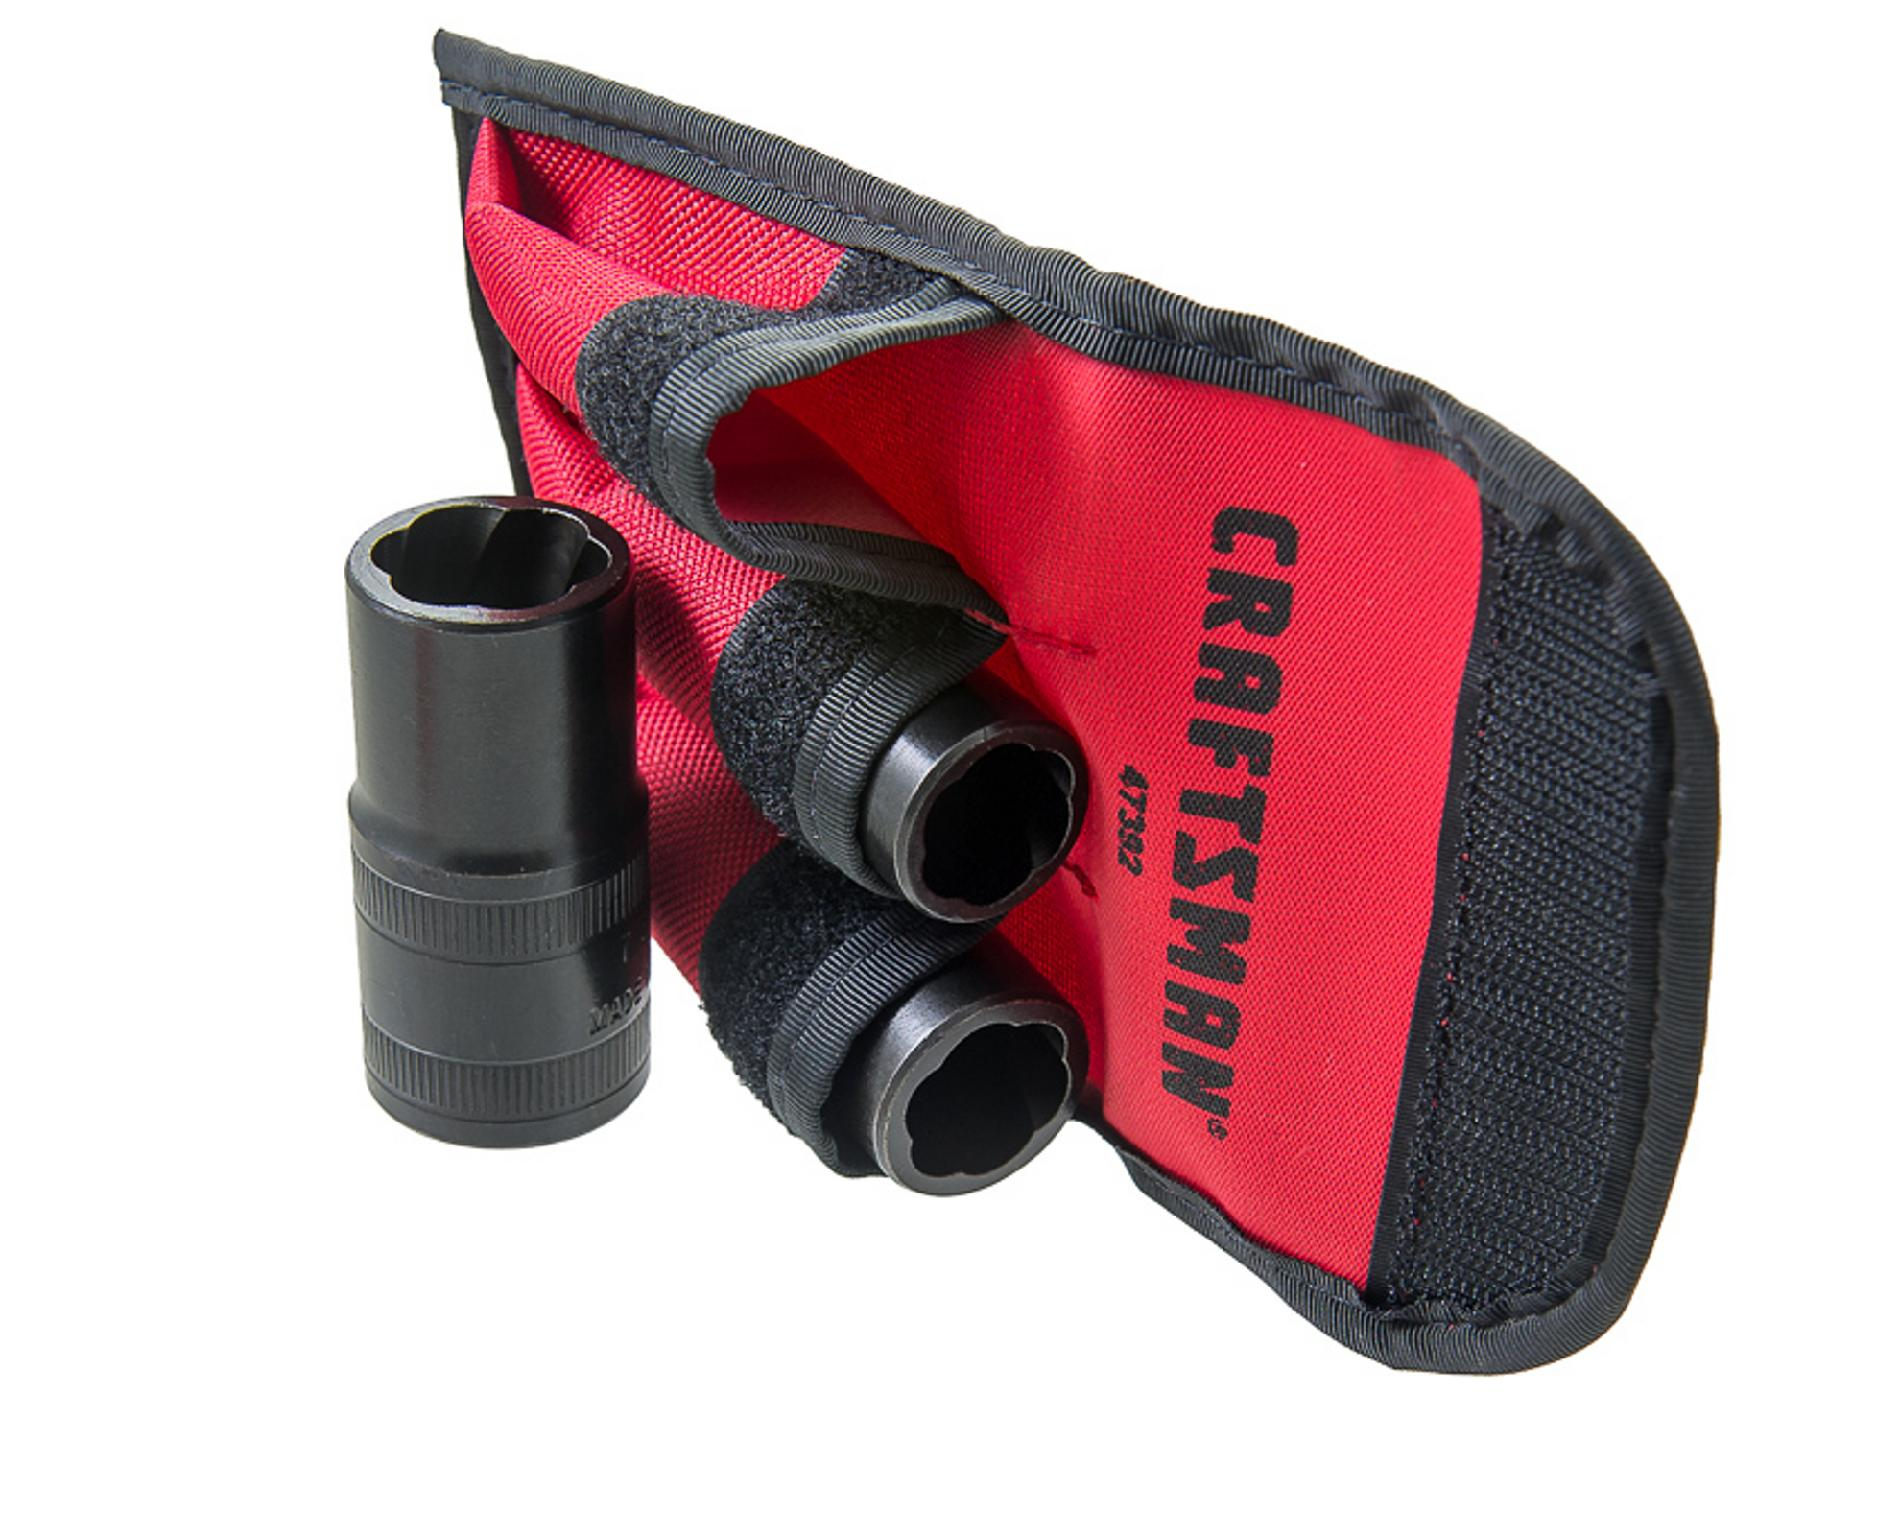 Craftsman 3 pc. Flip Socket Set with Red Pouch